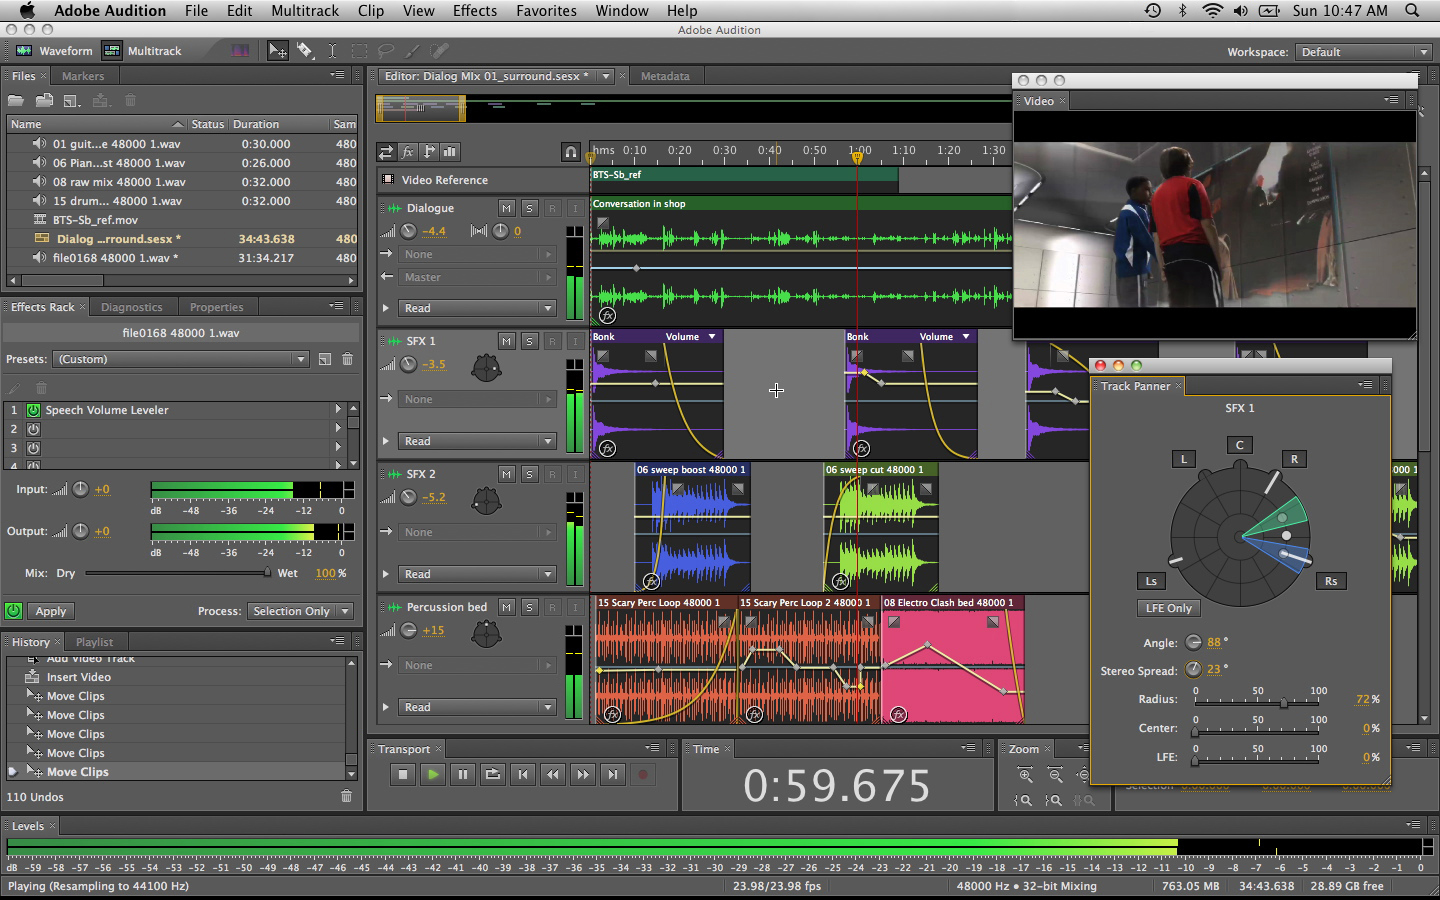 Adobe Audition vzhled programu